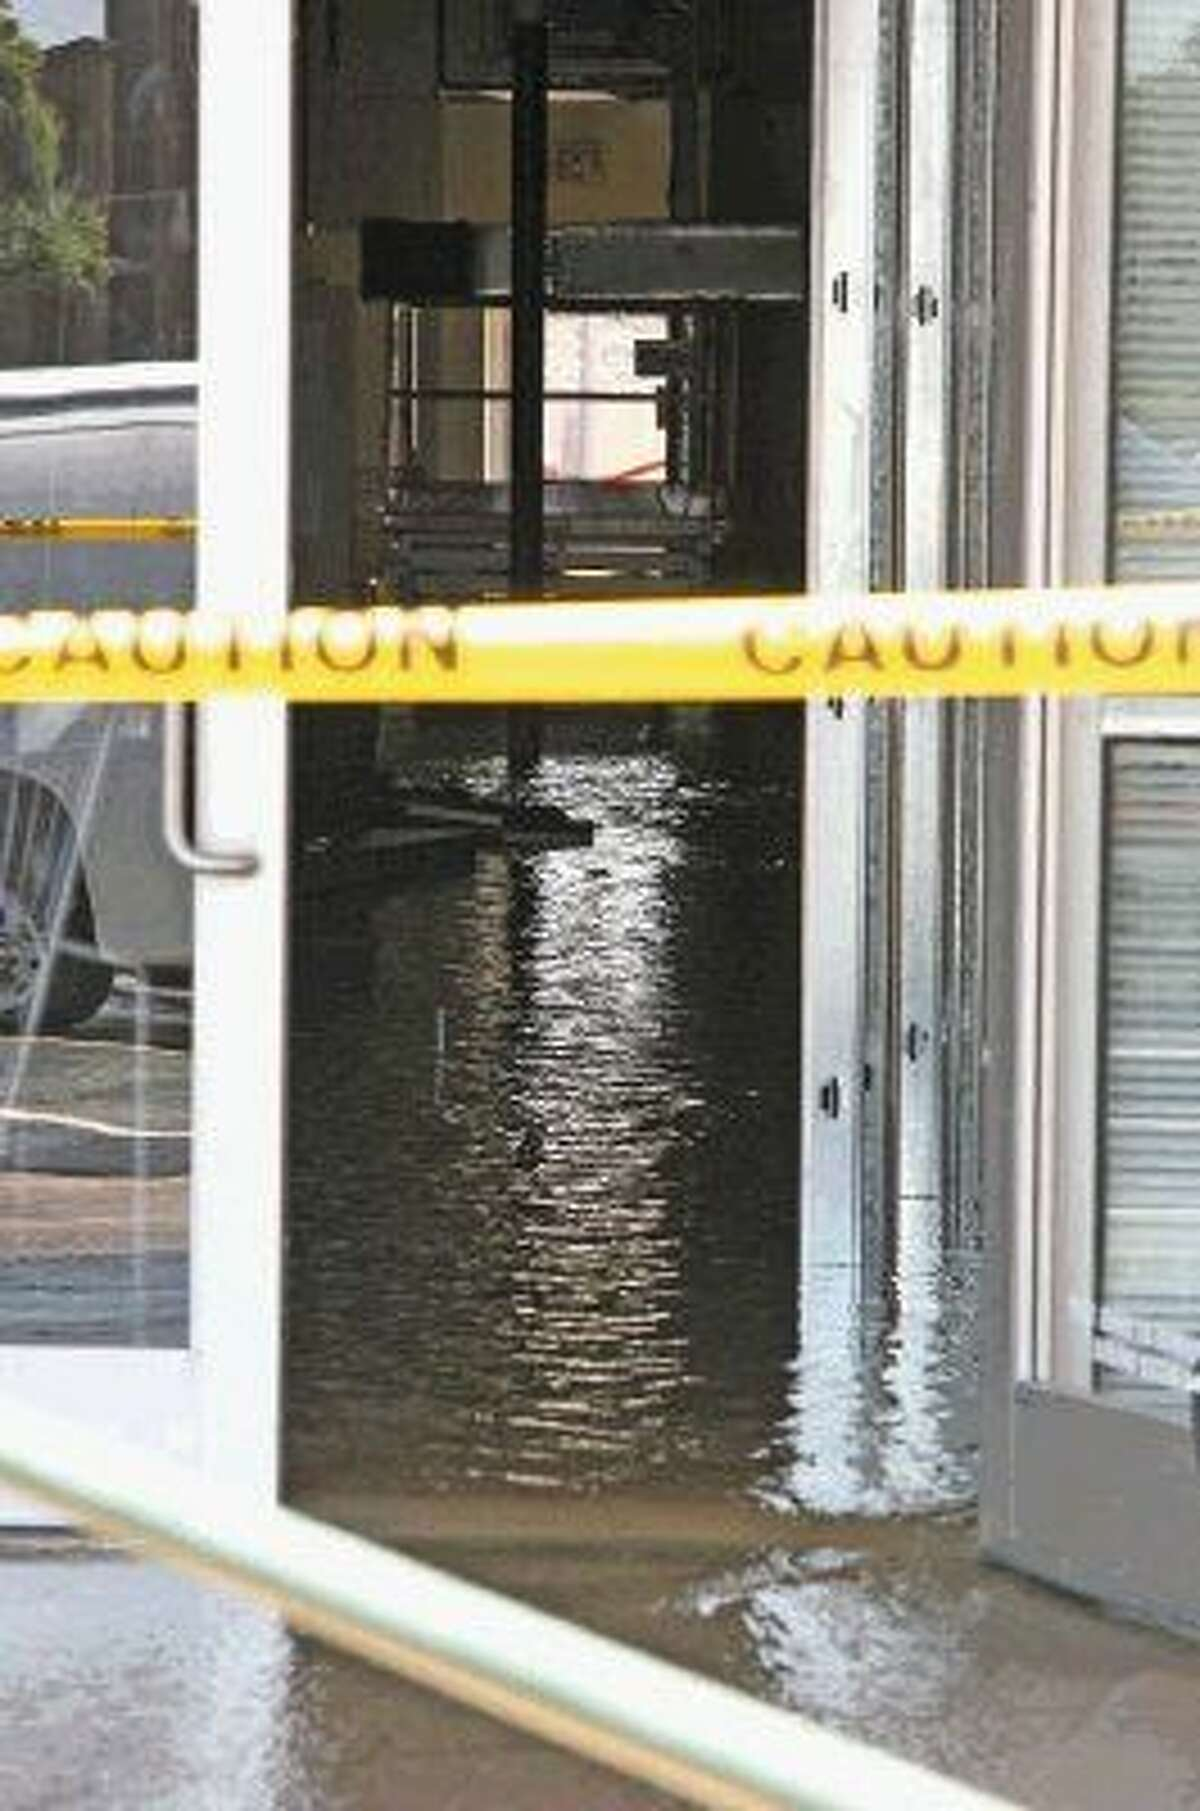 One of the vacant spaces in the strip center was closer to the break and had water just gushing out of the space and down the parking lot.